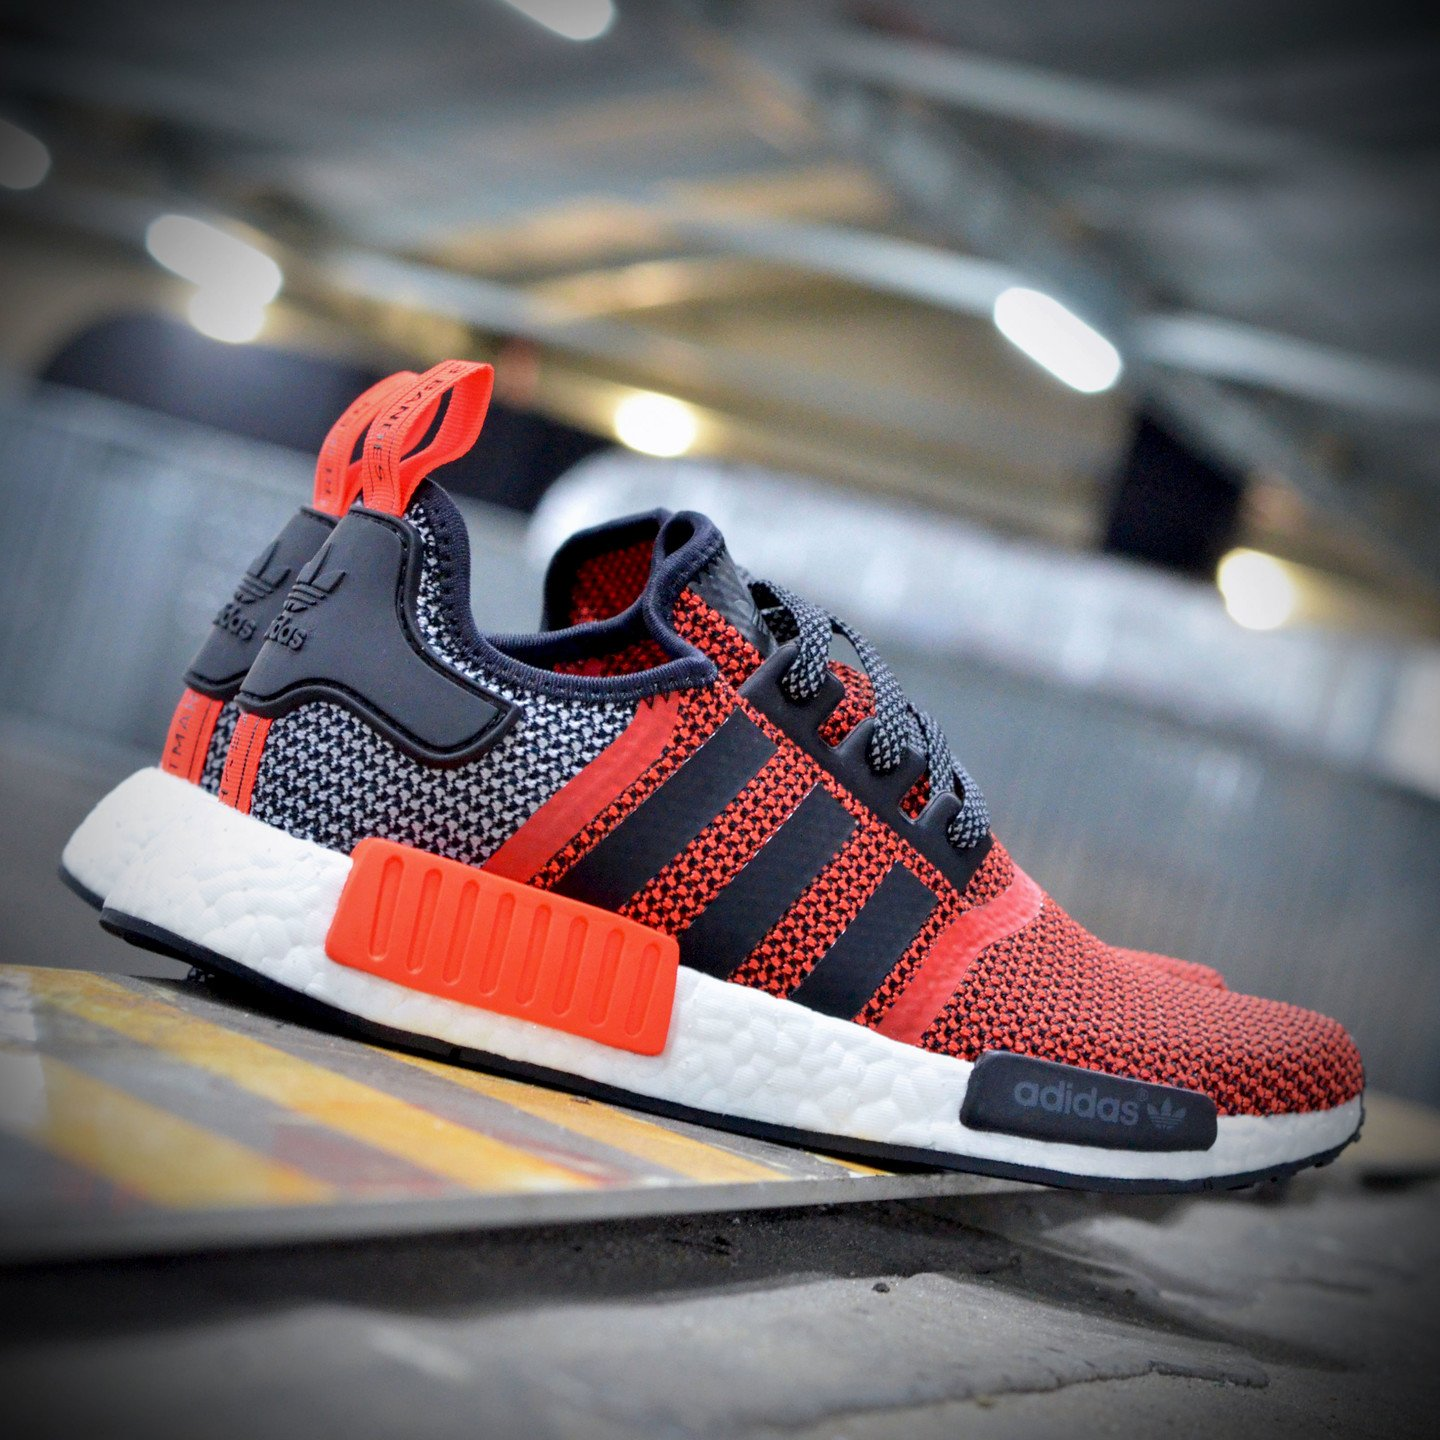 Adidas NMD R1 Runner Lush Red / Core Black S79158-46.66